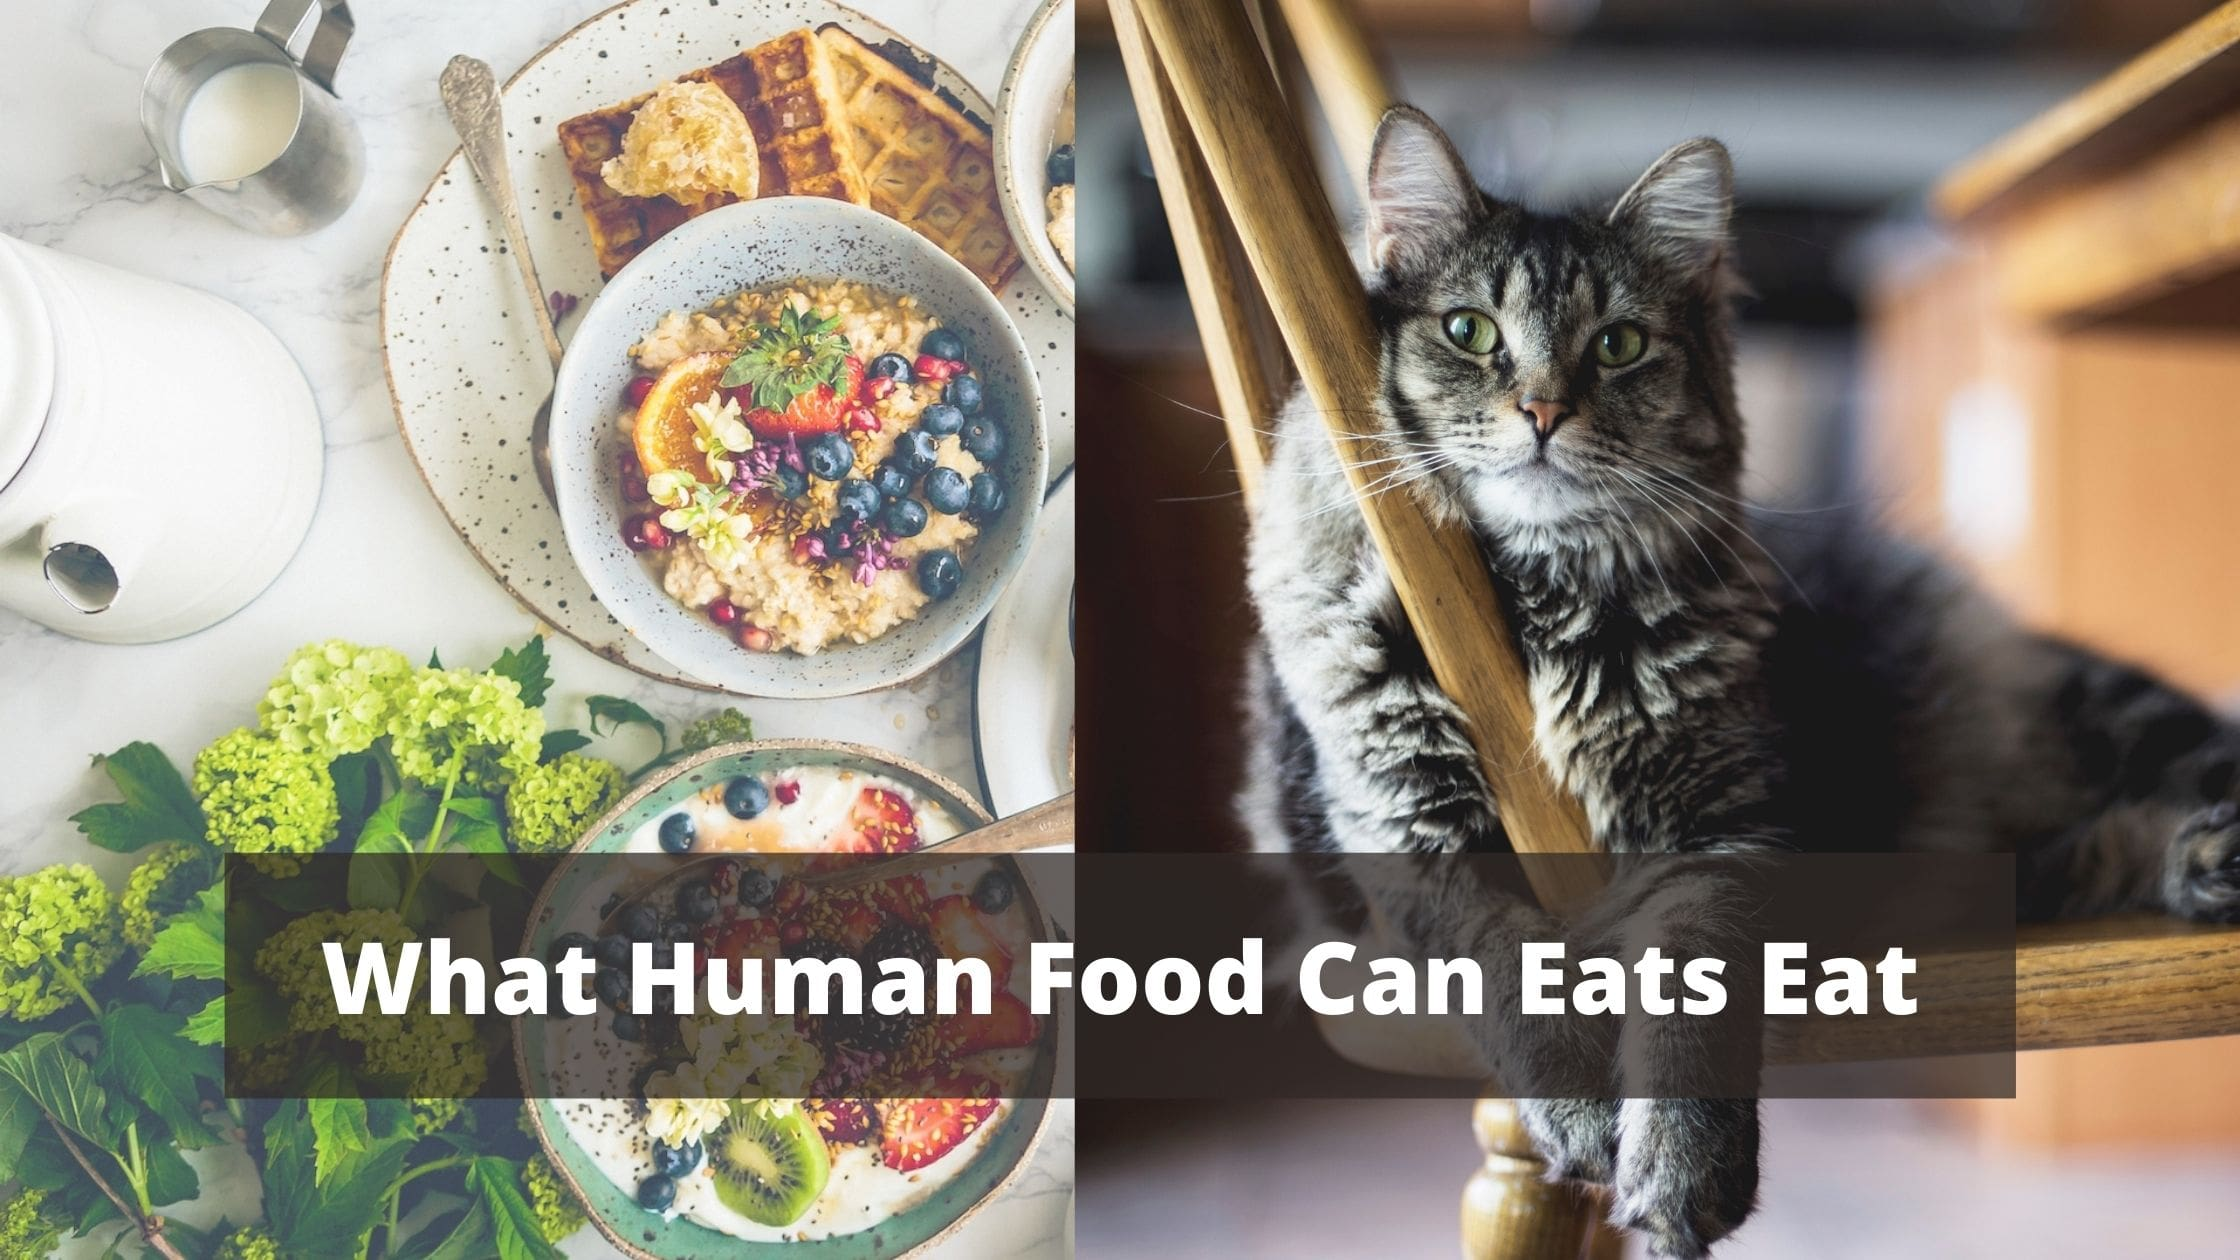 What Human Food Can Eats Eat